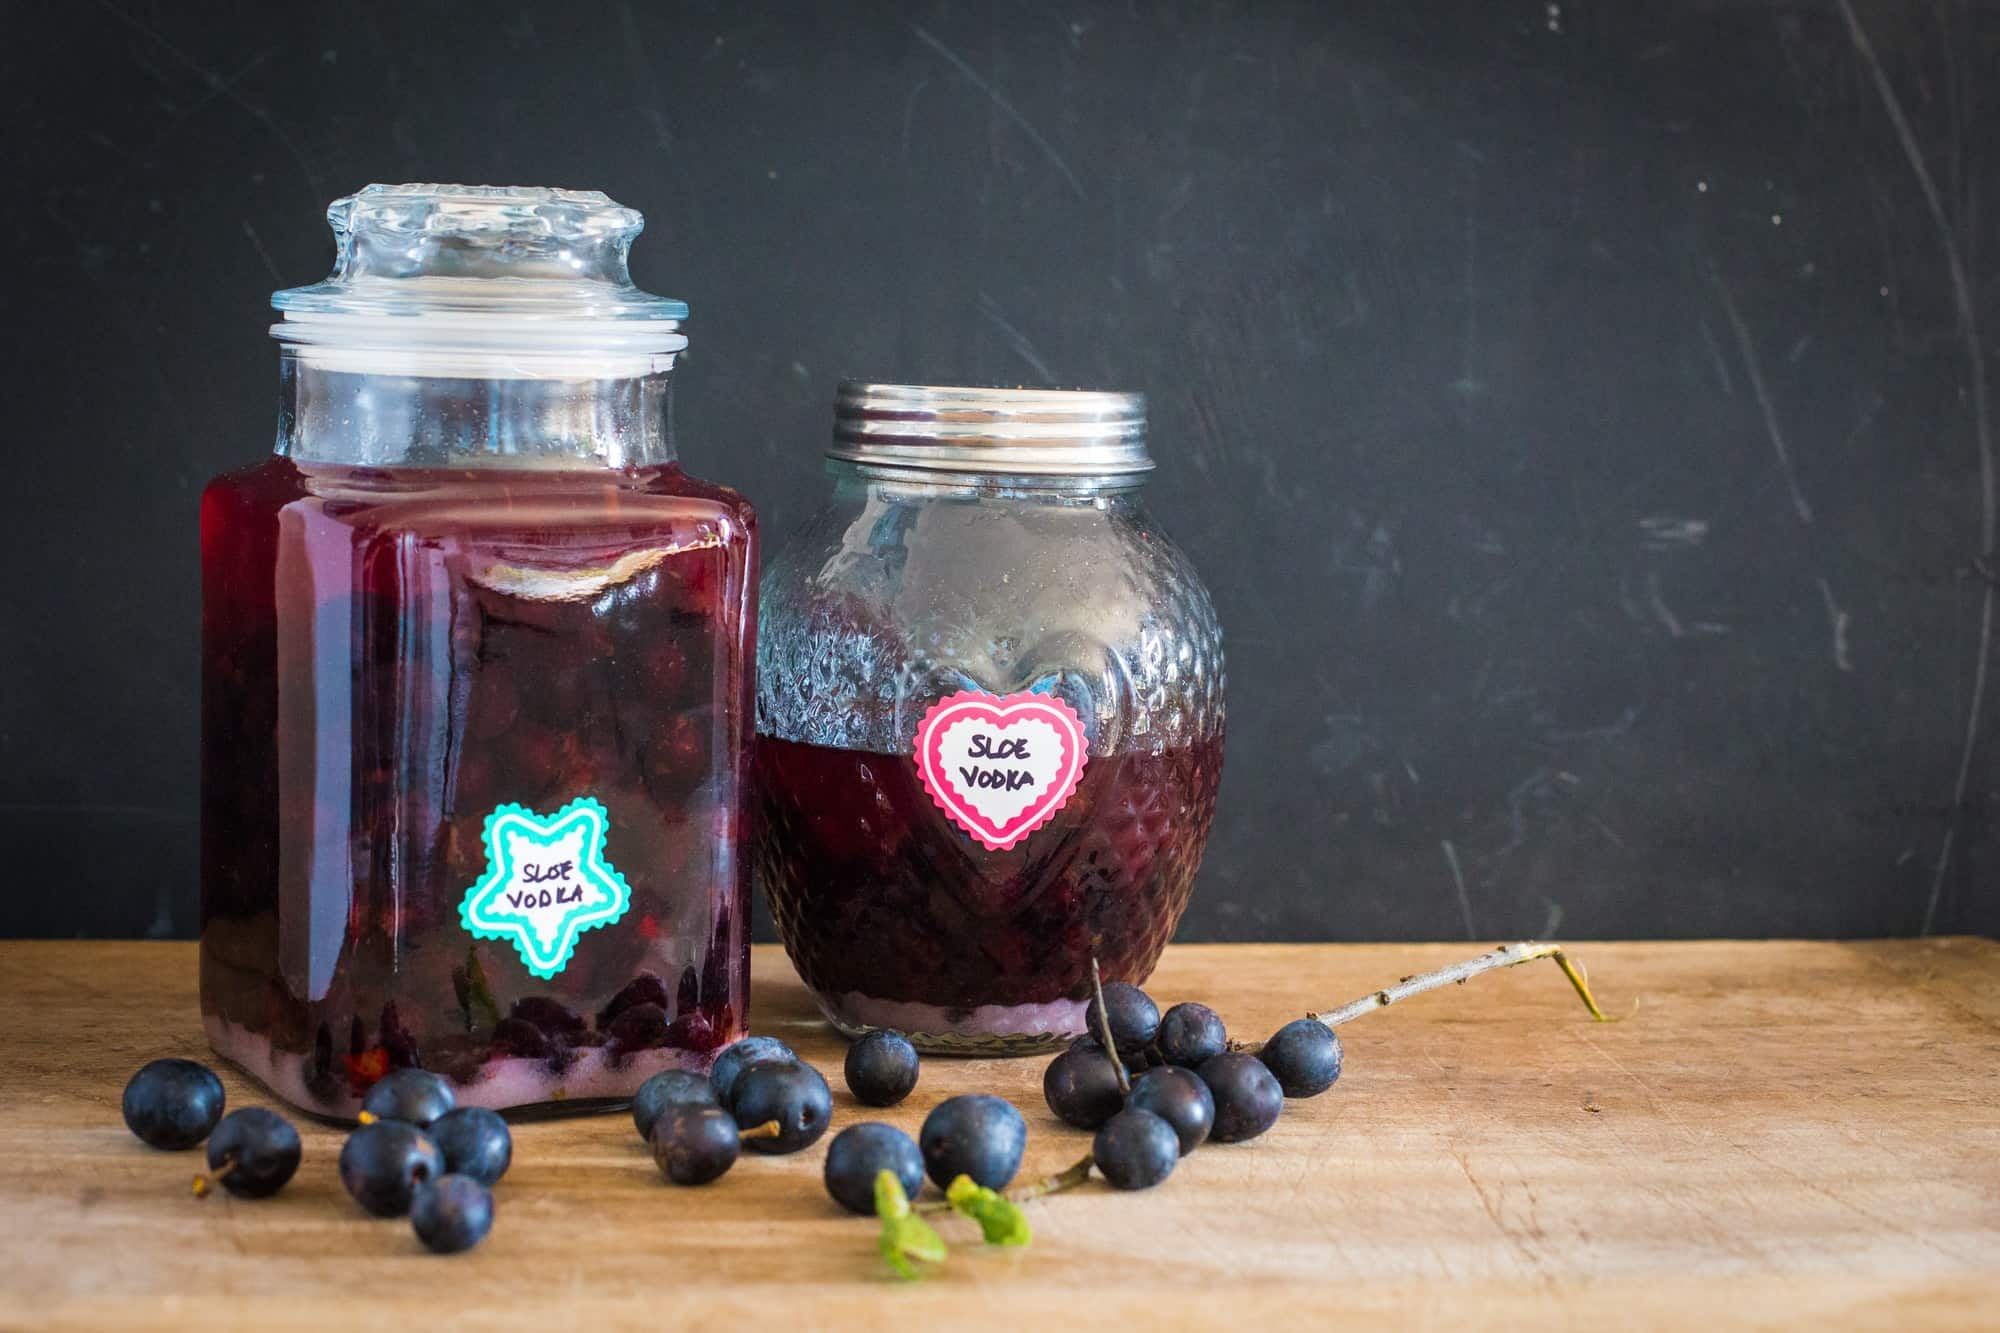 Homemade sloe vodka